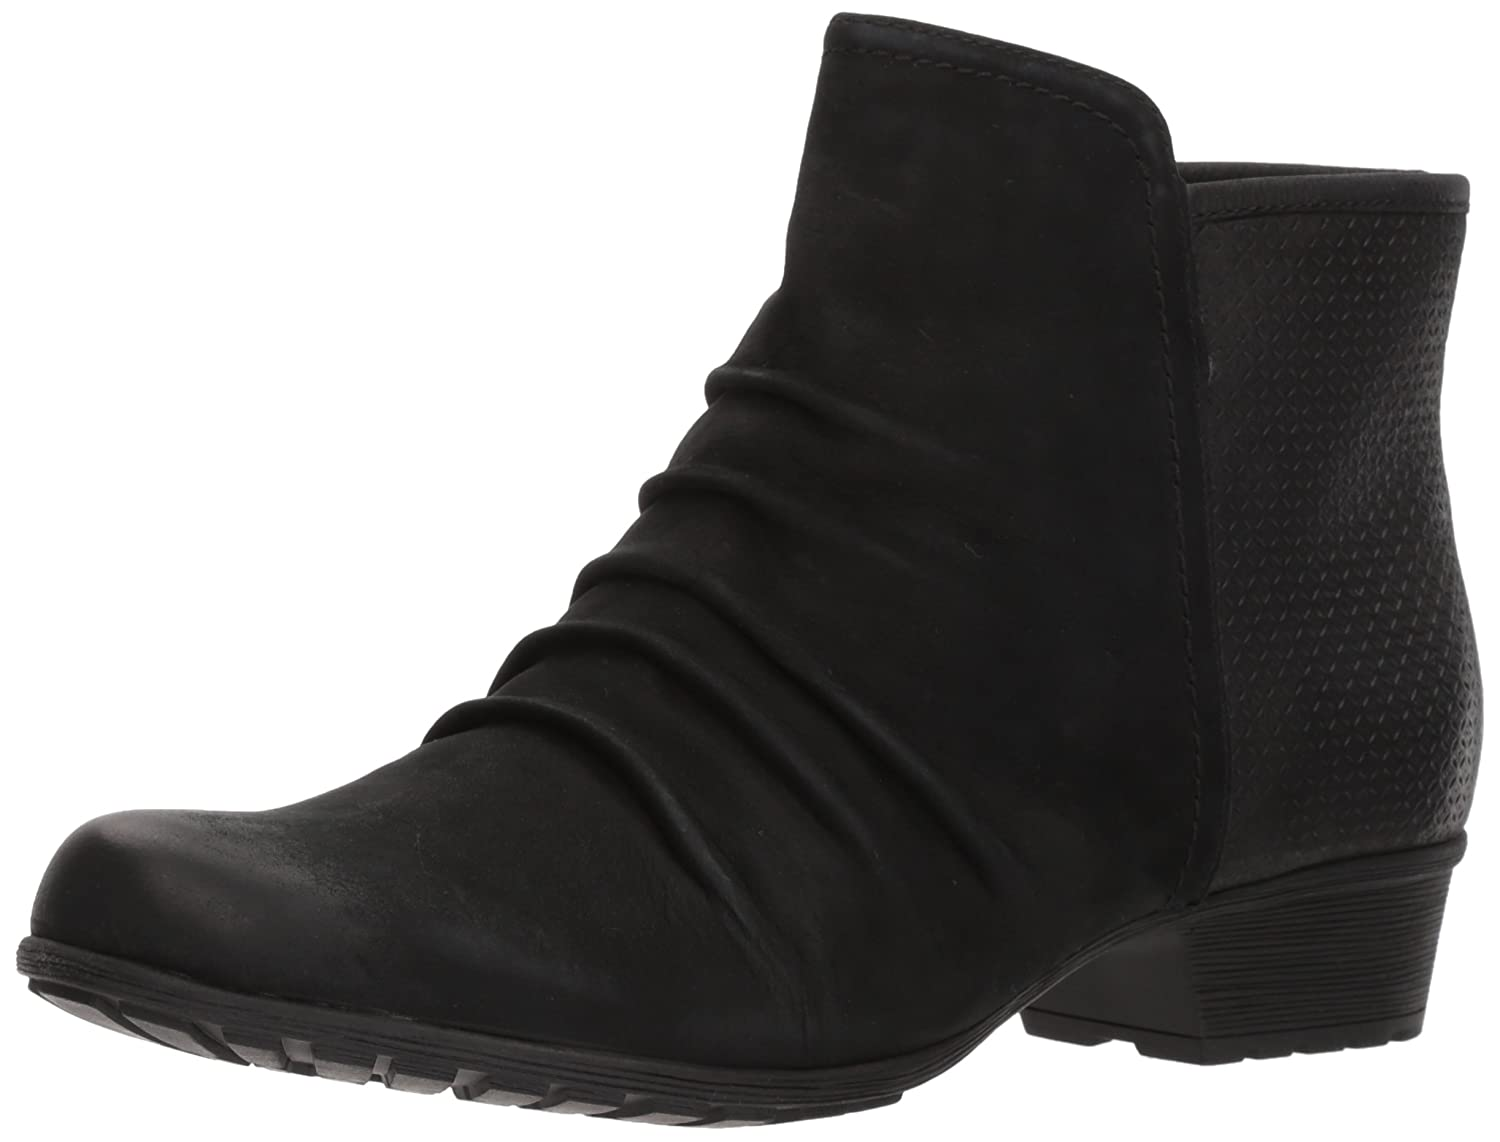 Cobb Hill Panel Women's Gratasha Panel Hill Ankle Boot B01MZIQTW9 10 W US|Black nubuck 1a1d02